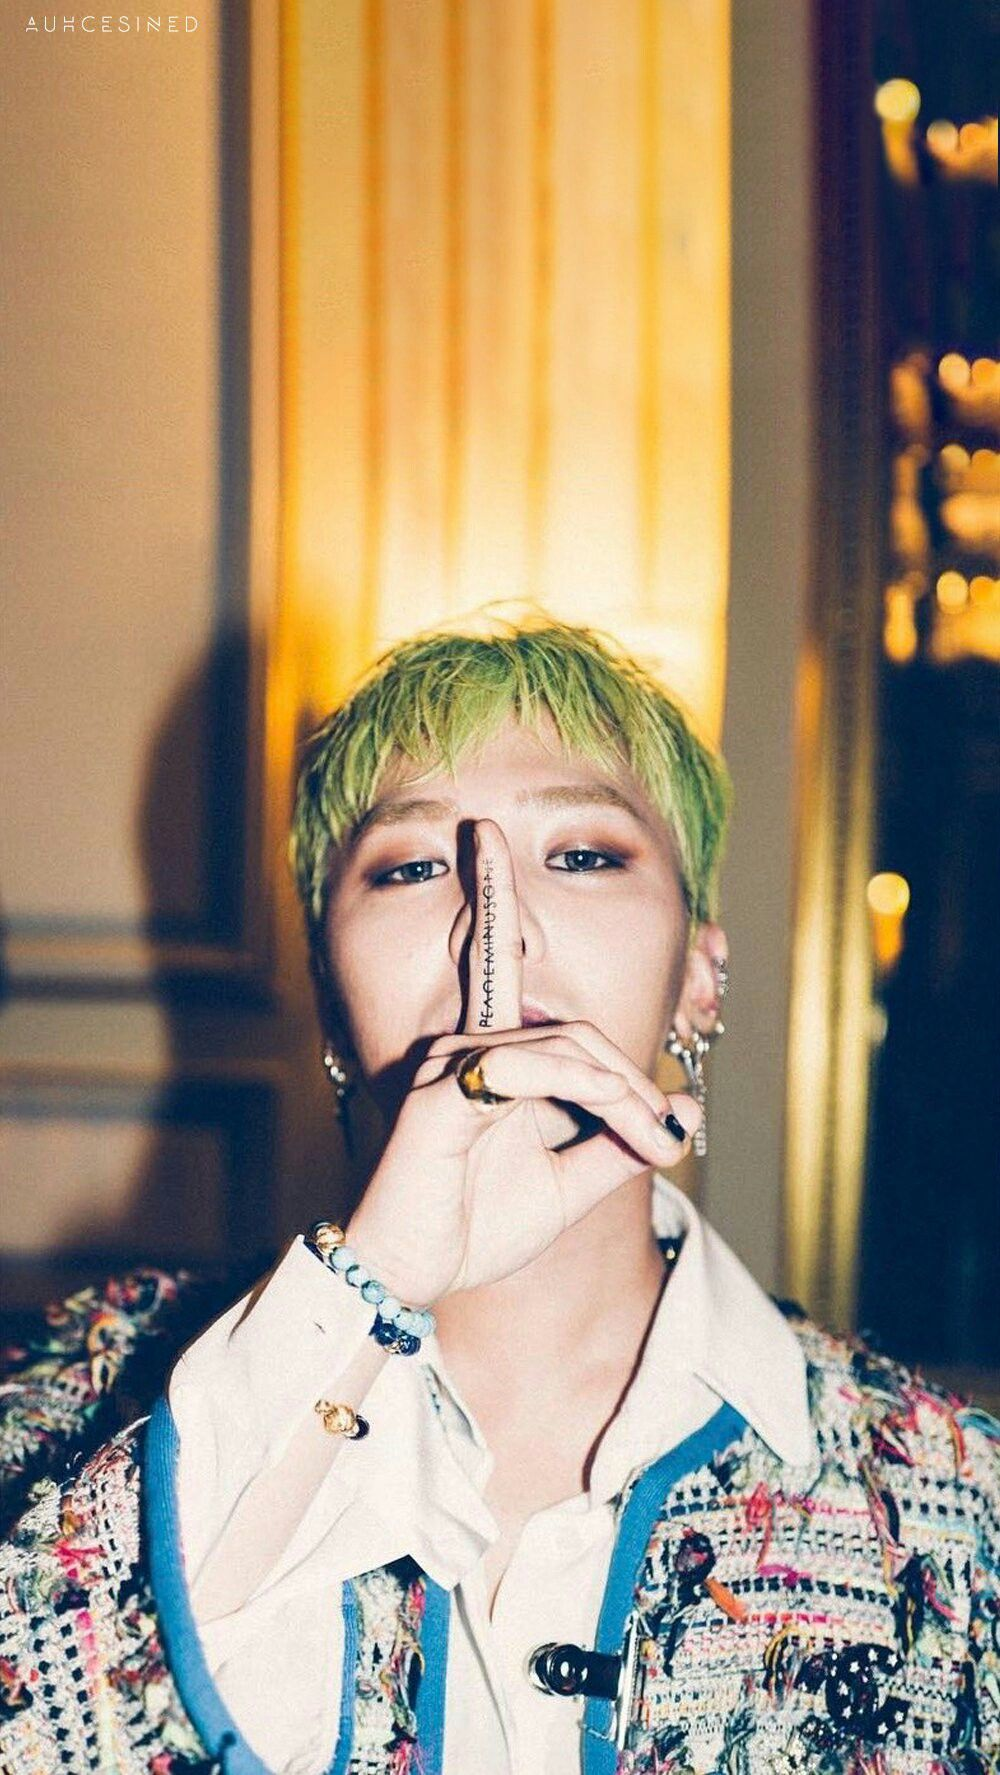 G Dragon Wallpaper : dragon, wallpaper, Dragon, Wallpaper, Ideas, Dragon,, Bigbang